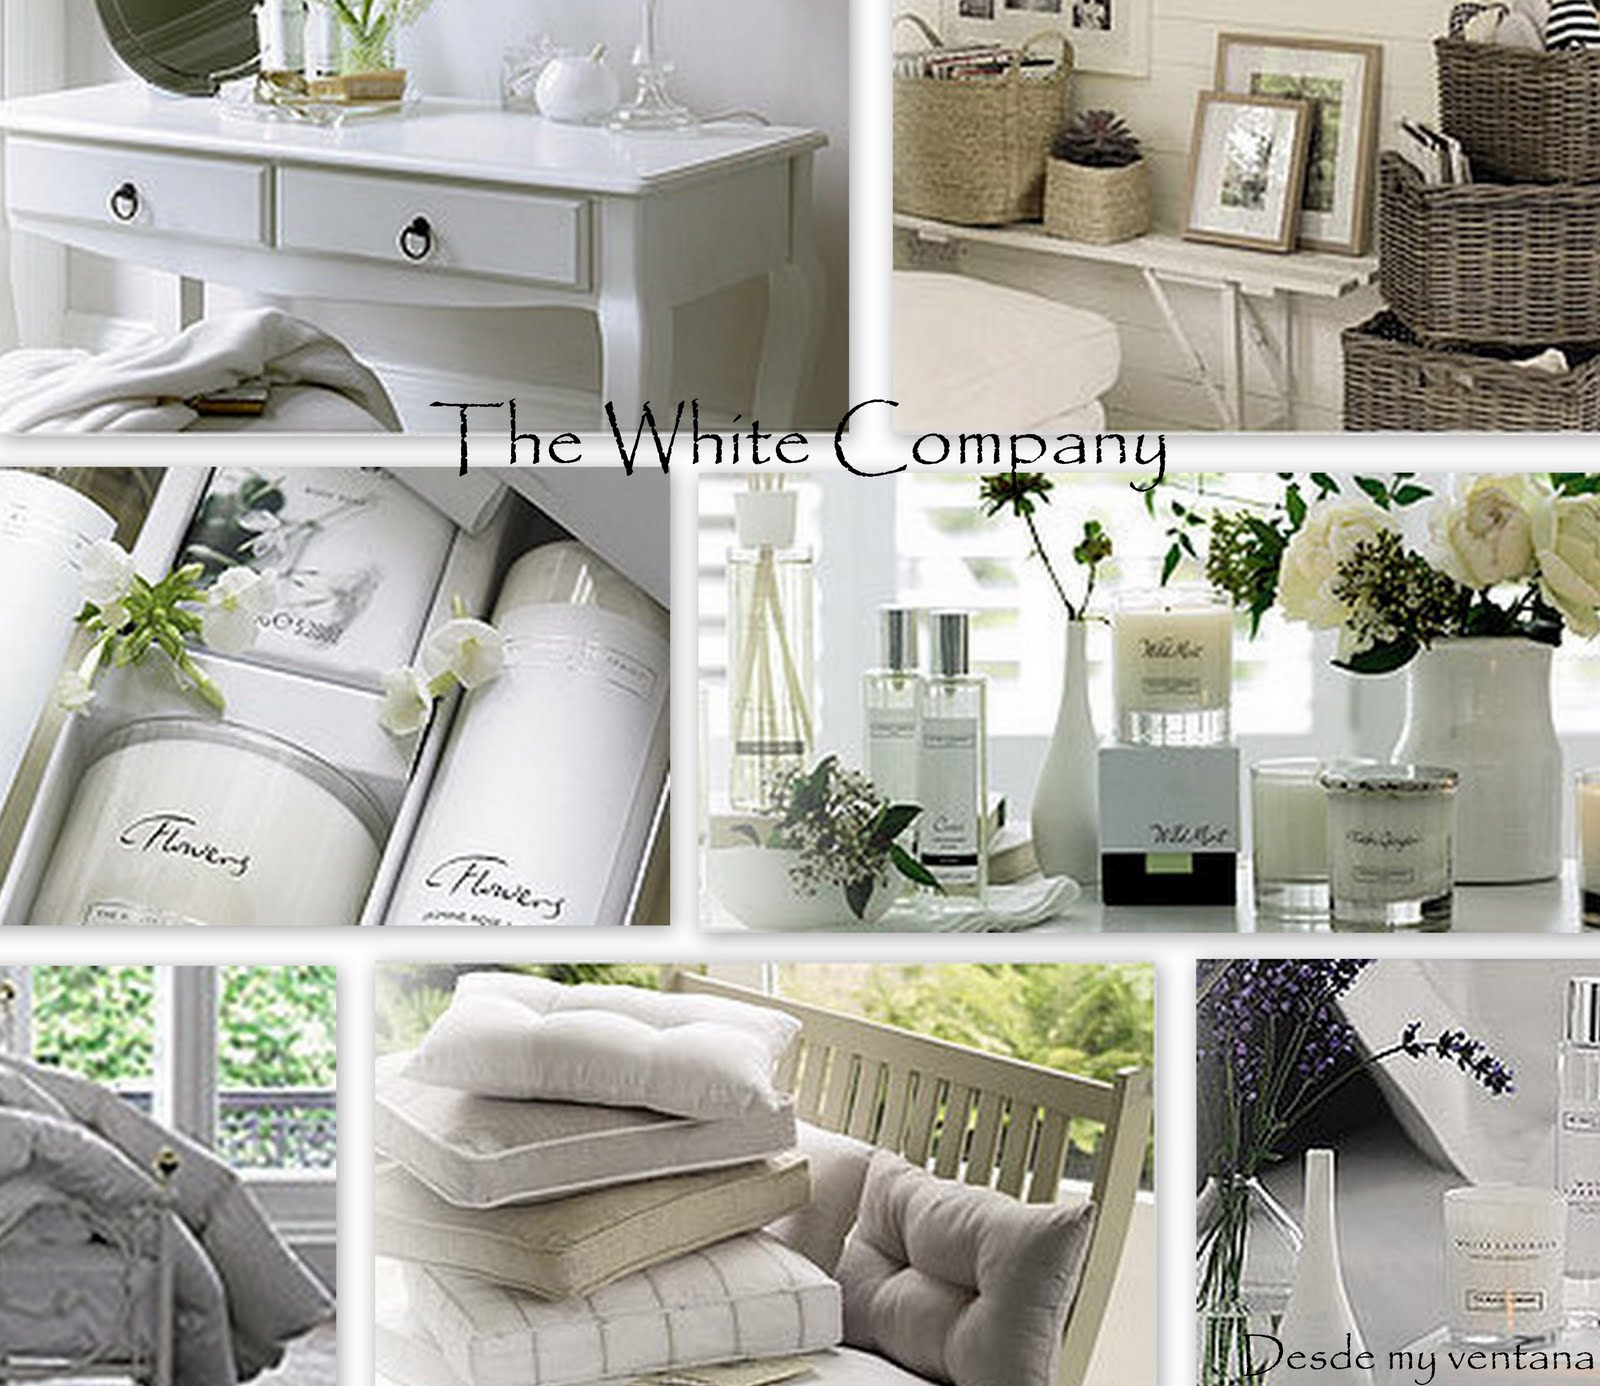 The white company desde my ventana blog de decoraci n - Desde mi ventana blog decoracion ...